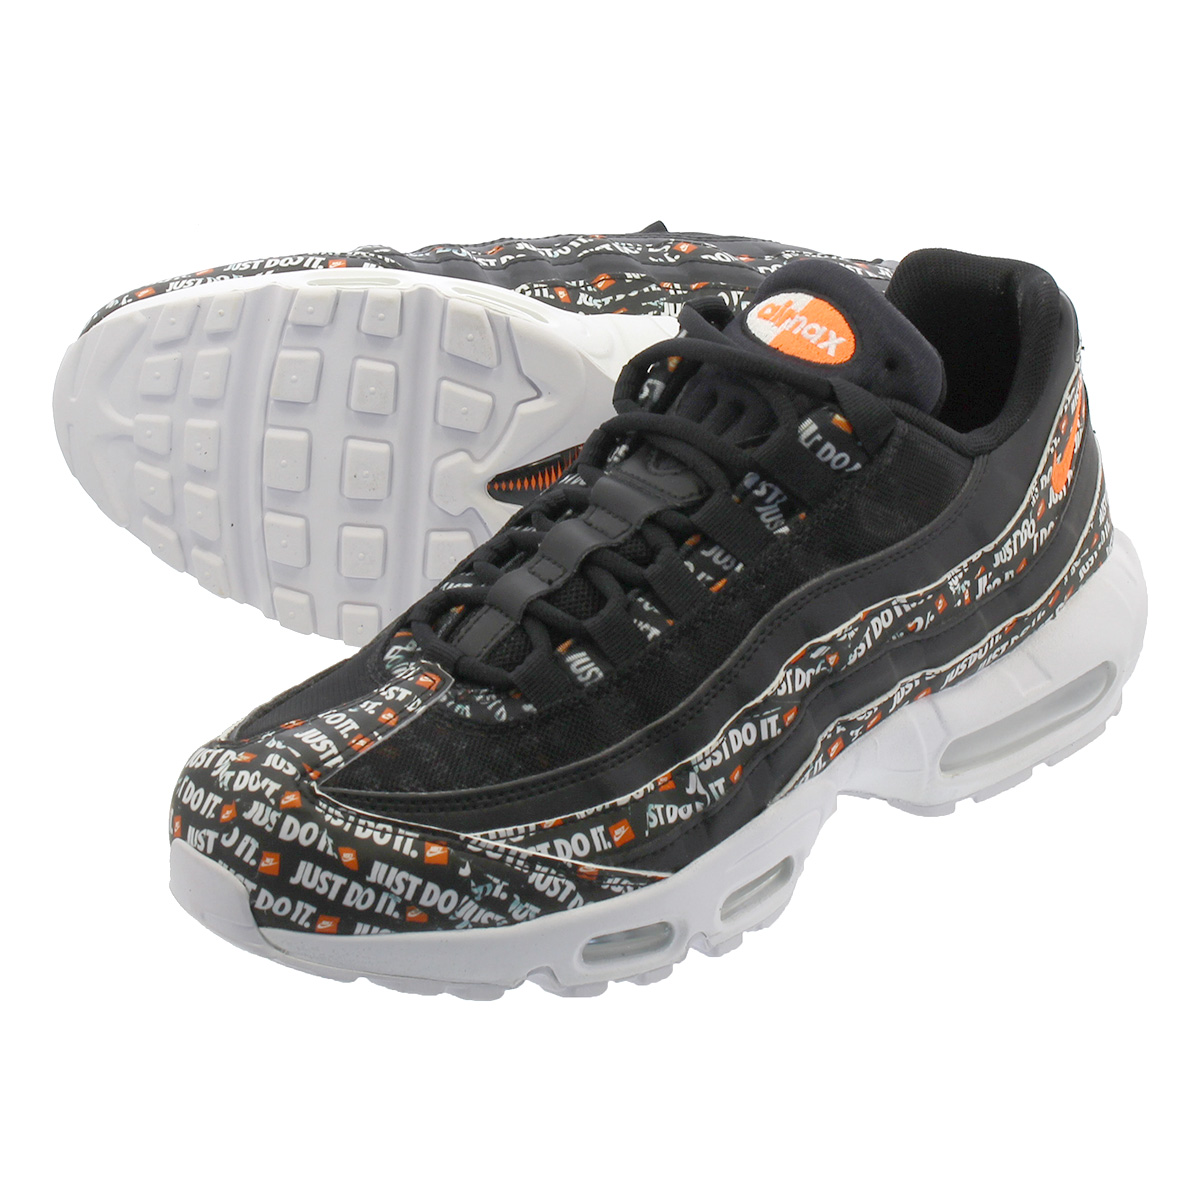 new arrival 242ff be477 NIKE AIR MAX 95 SE Kie Ney AMAX 95 SE BLACK BLACK WHITE TOTAL ORANGE  av6246-001